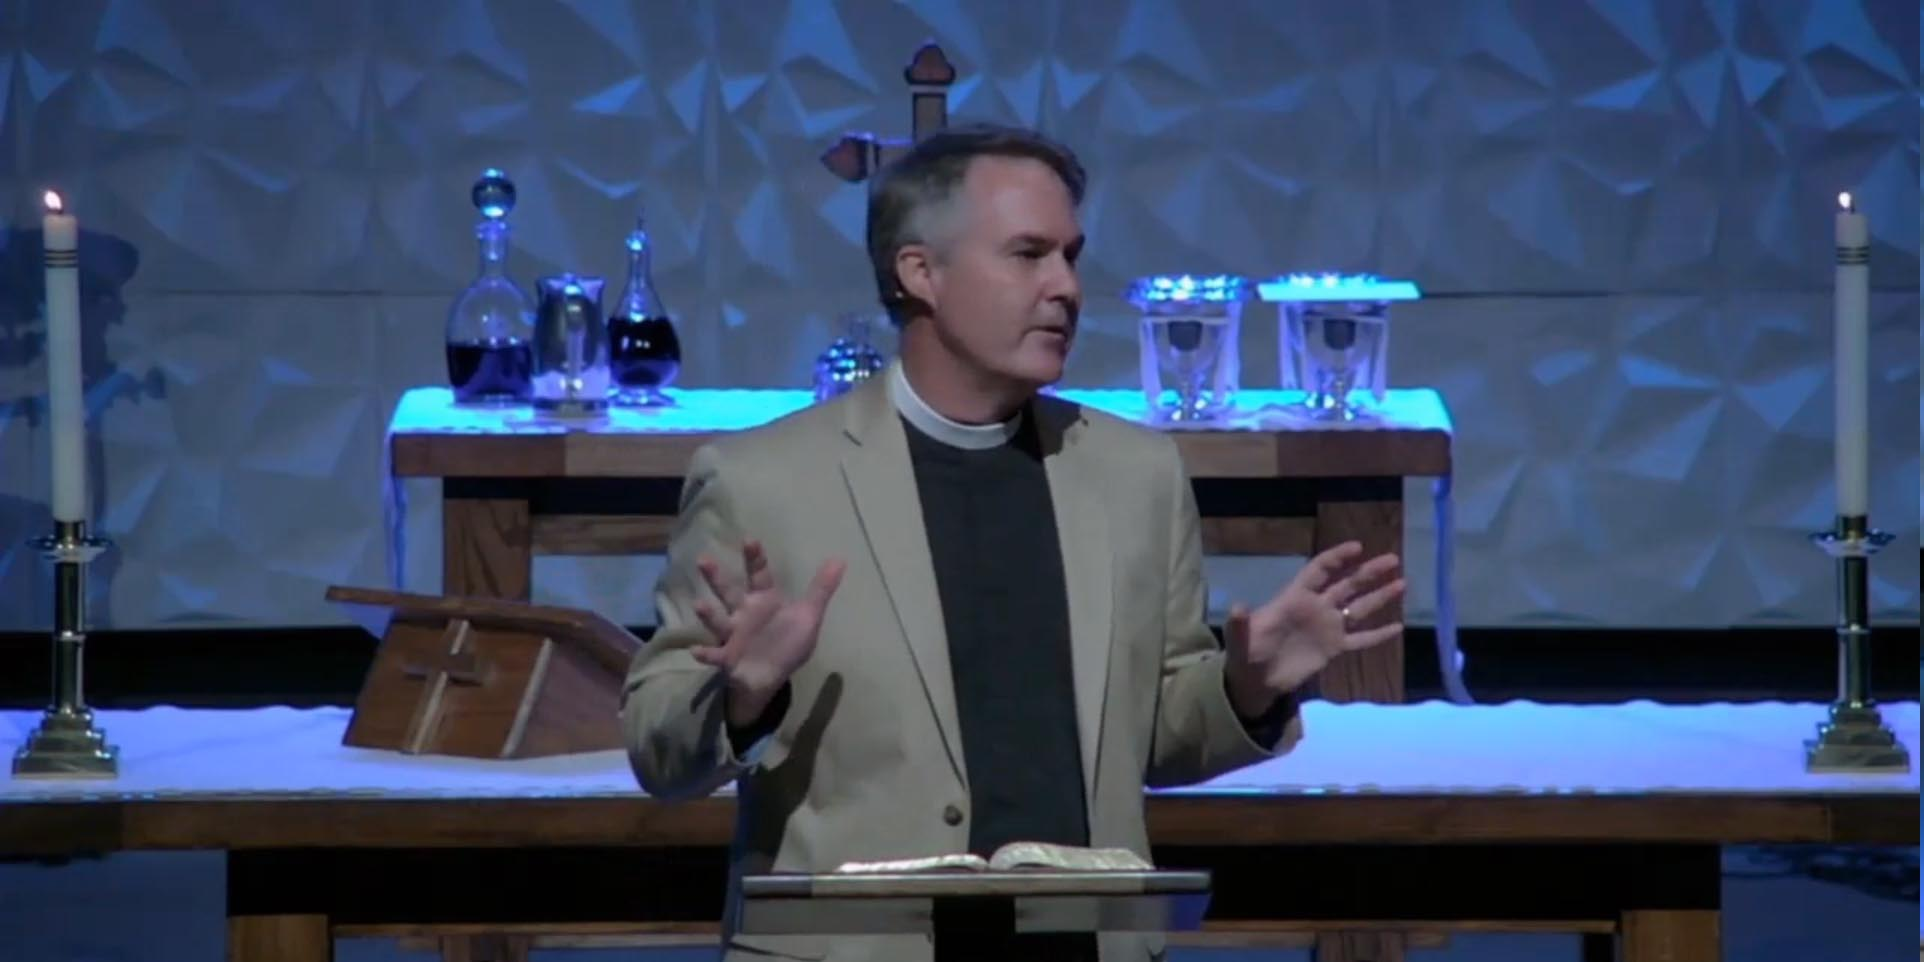 The Mystery Revealed - Sermon by the Rev. Charlie Holt